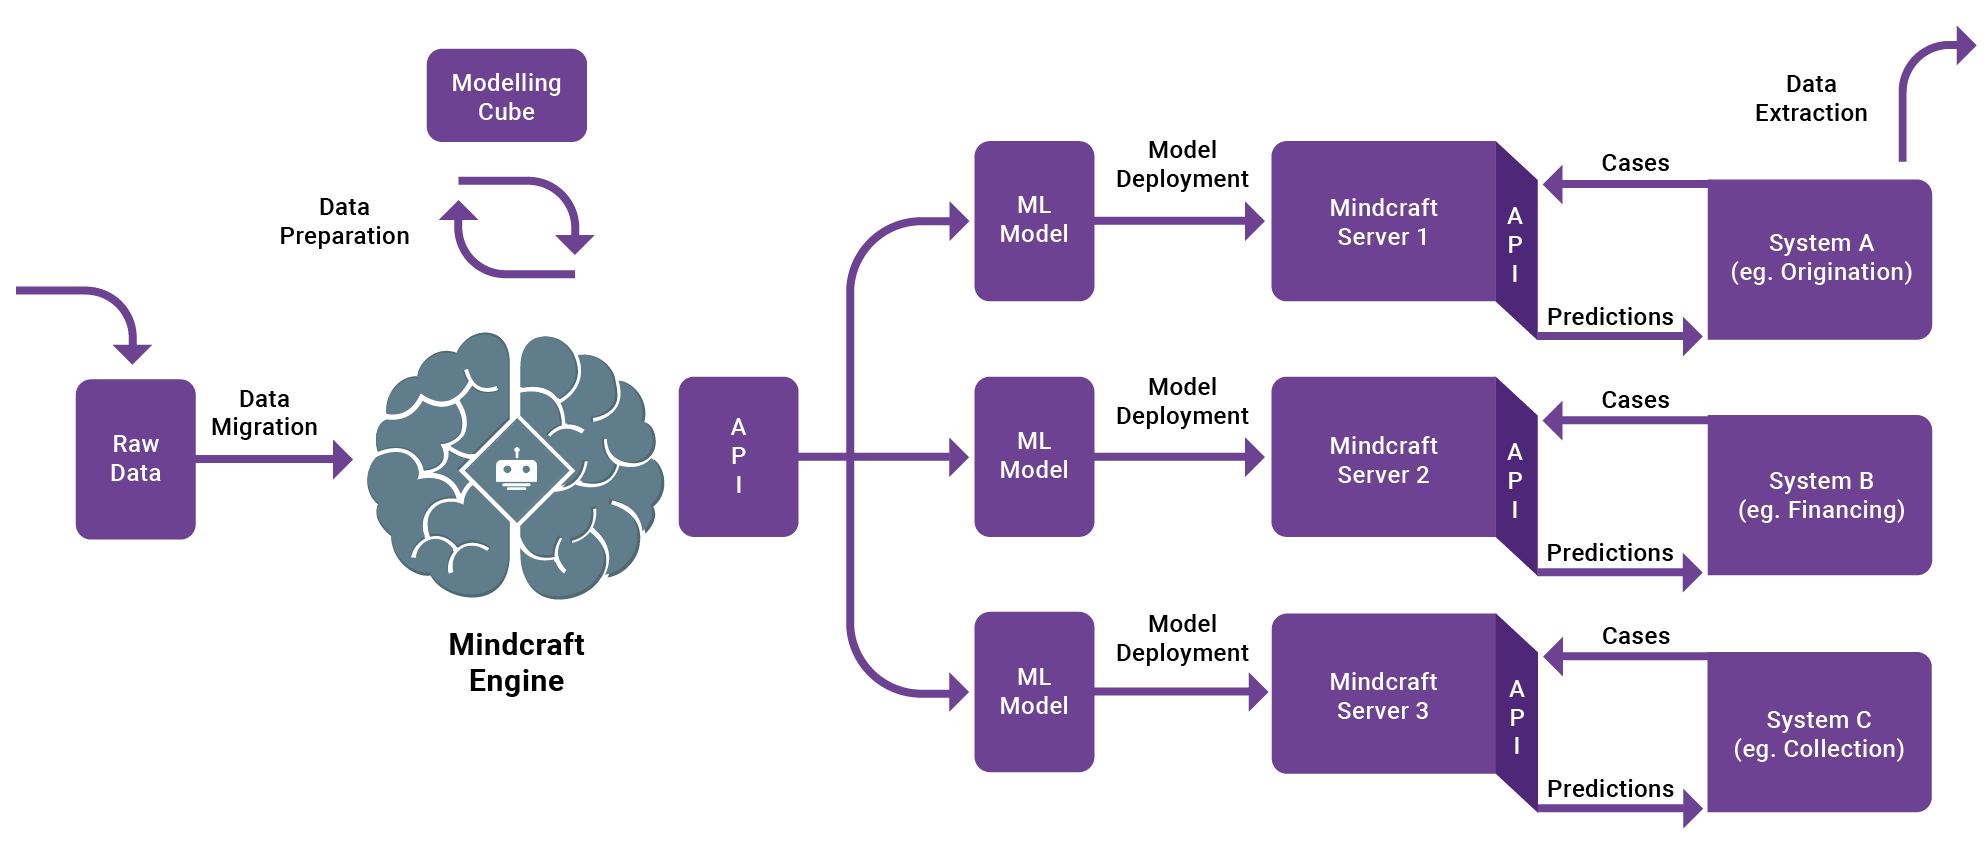 Mindcraft engine, architecture design, AI architecture, AI modeling